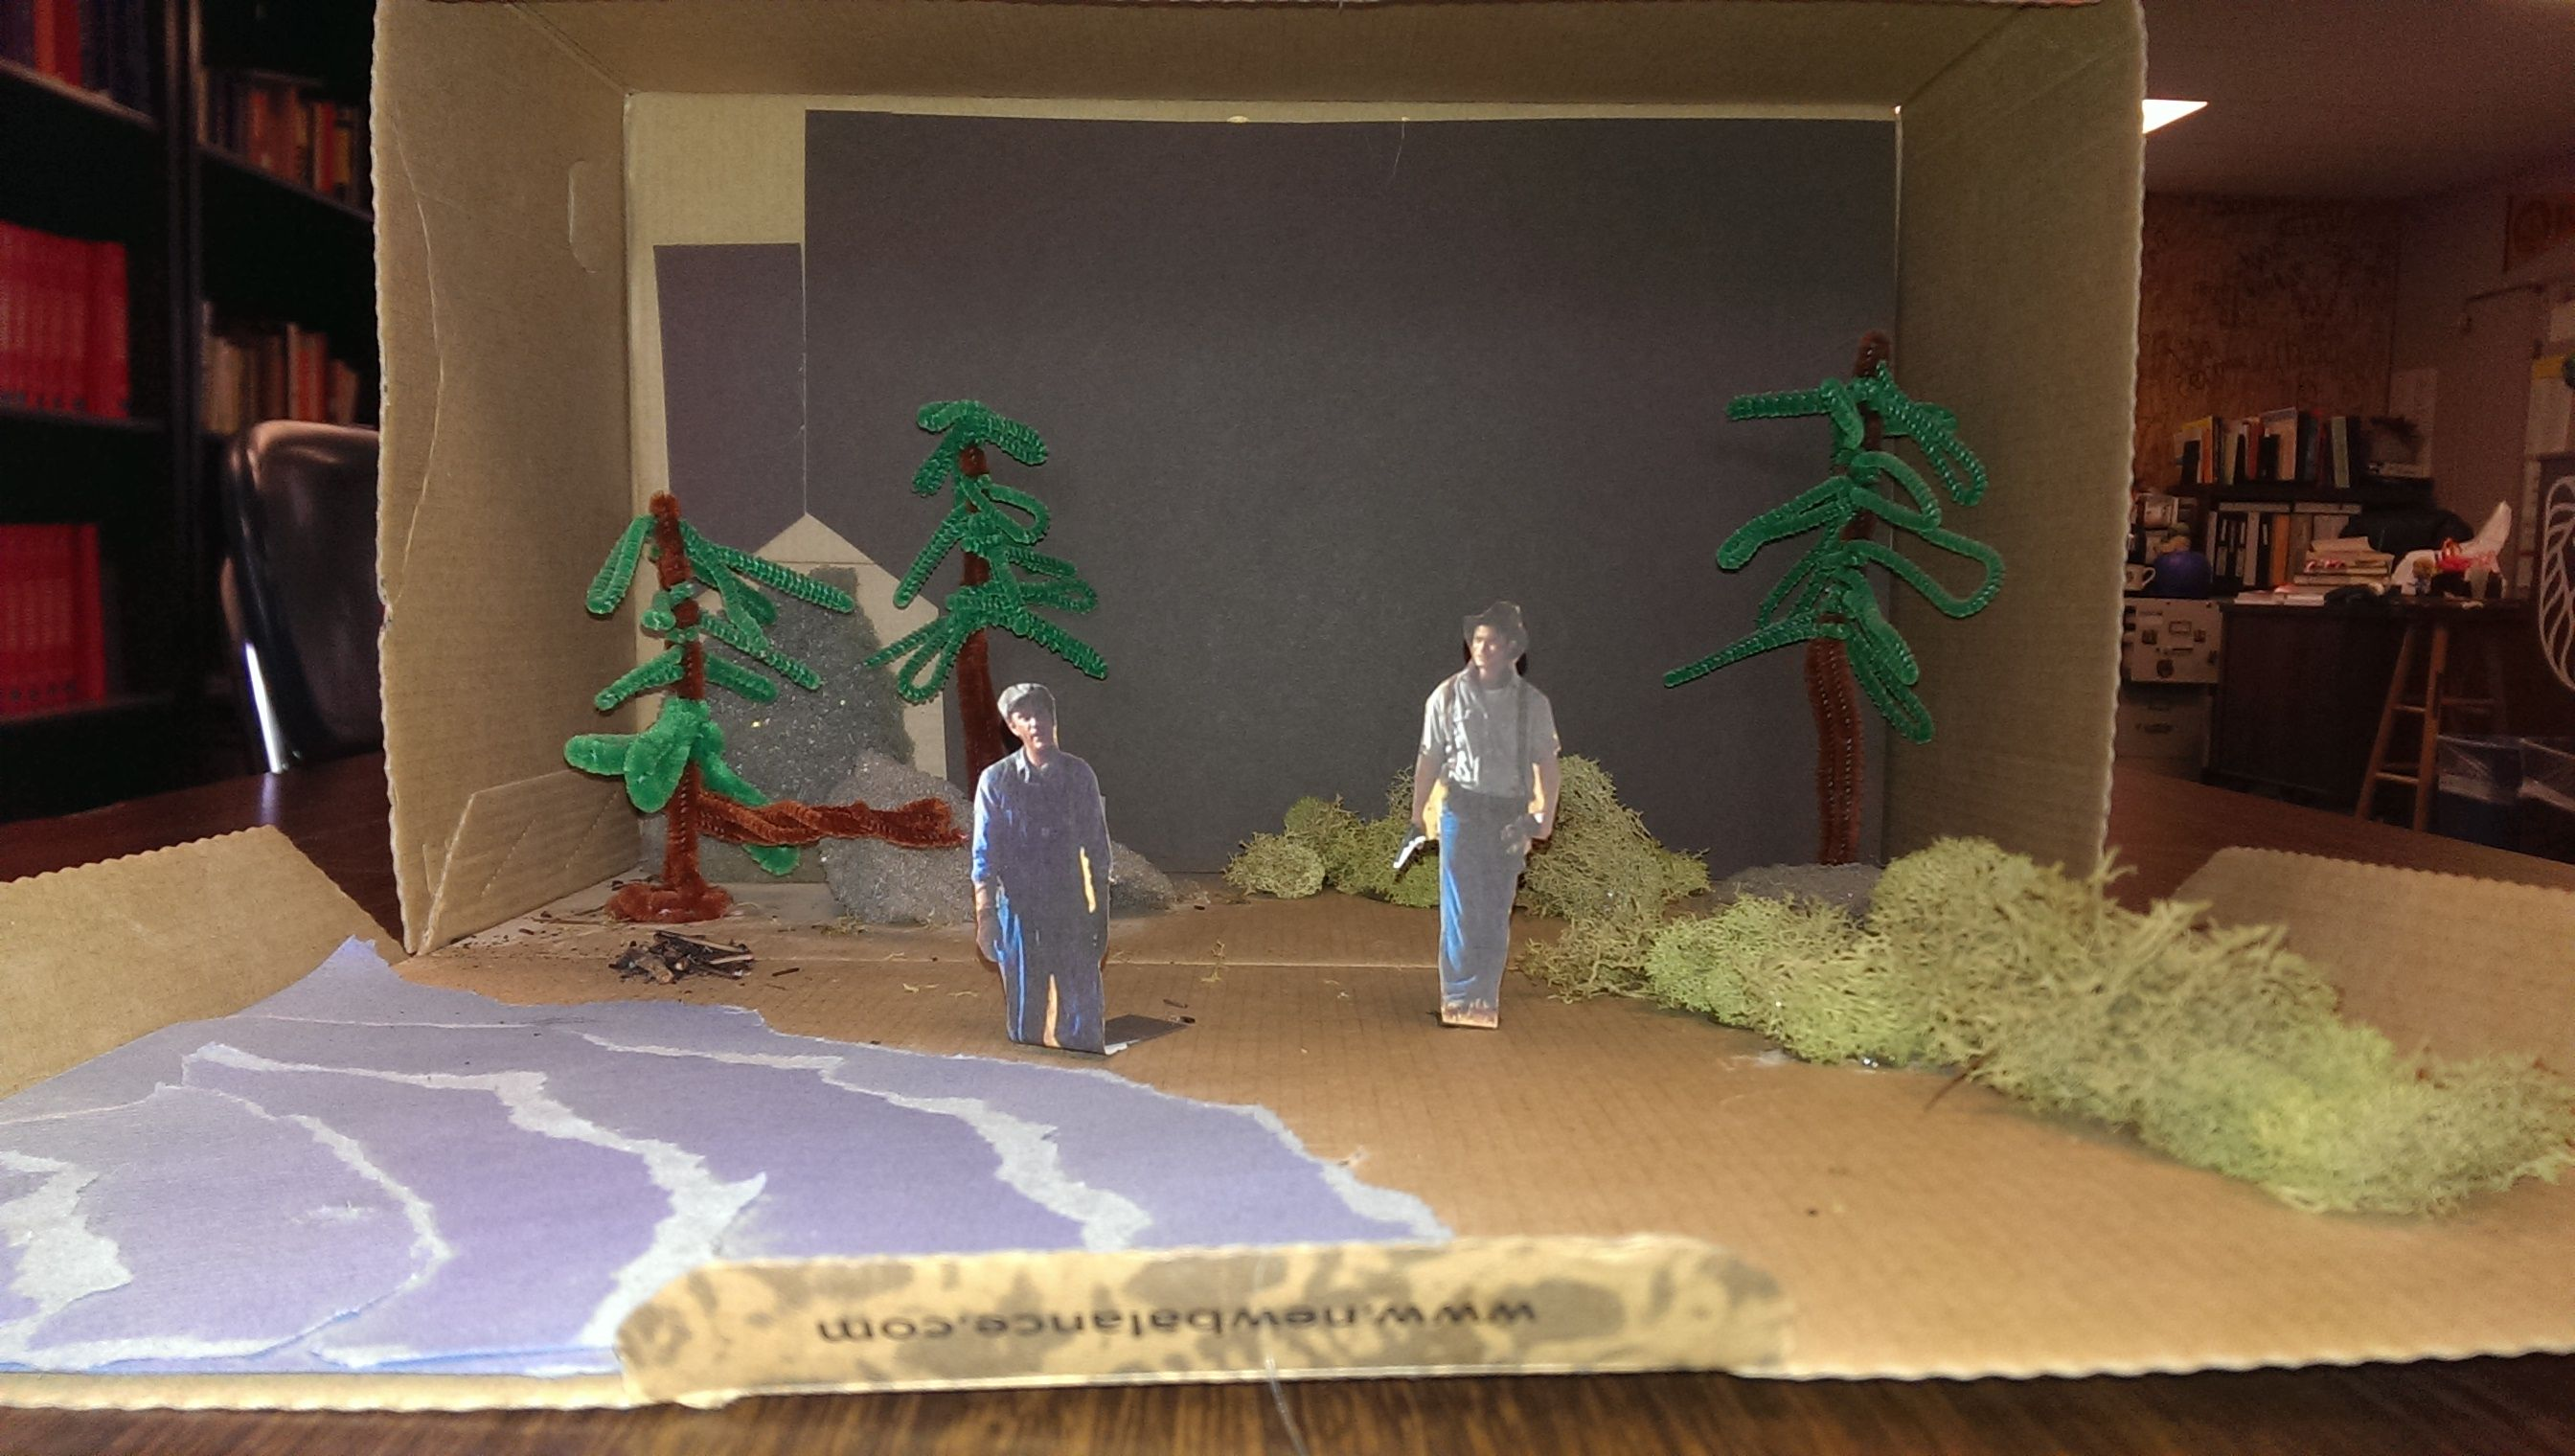 Of Mice And Men Project Create A Diorama That Captures What